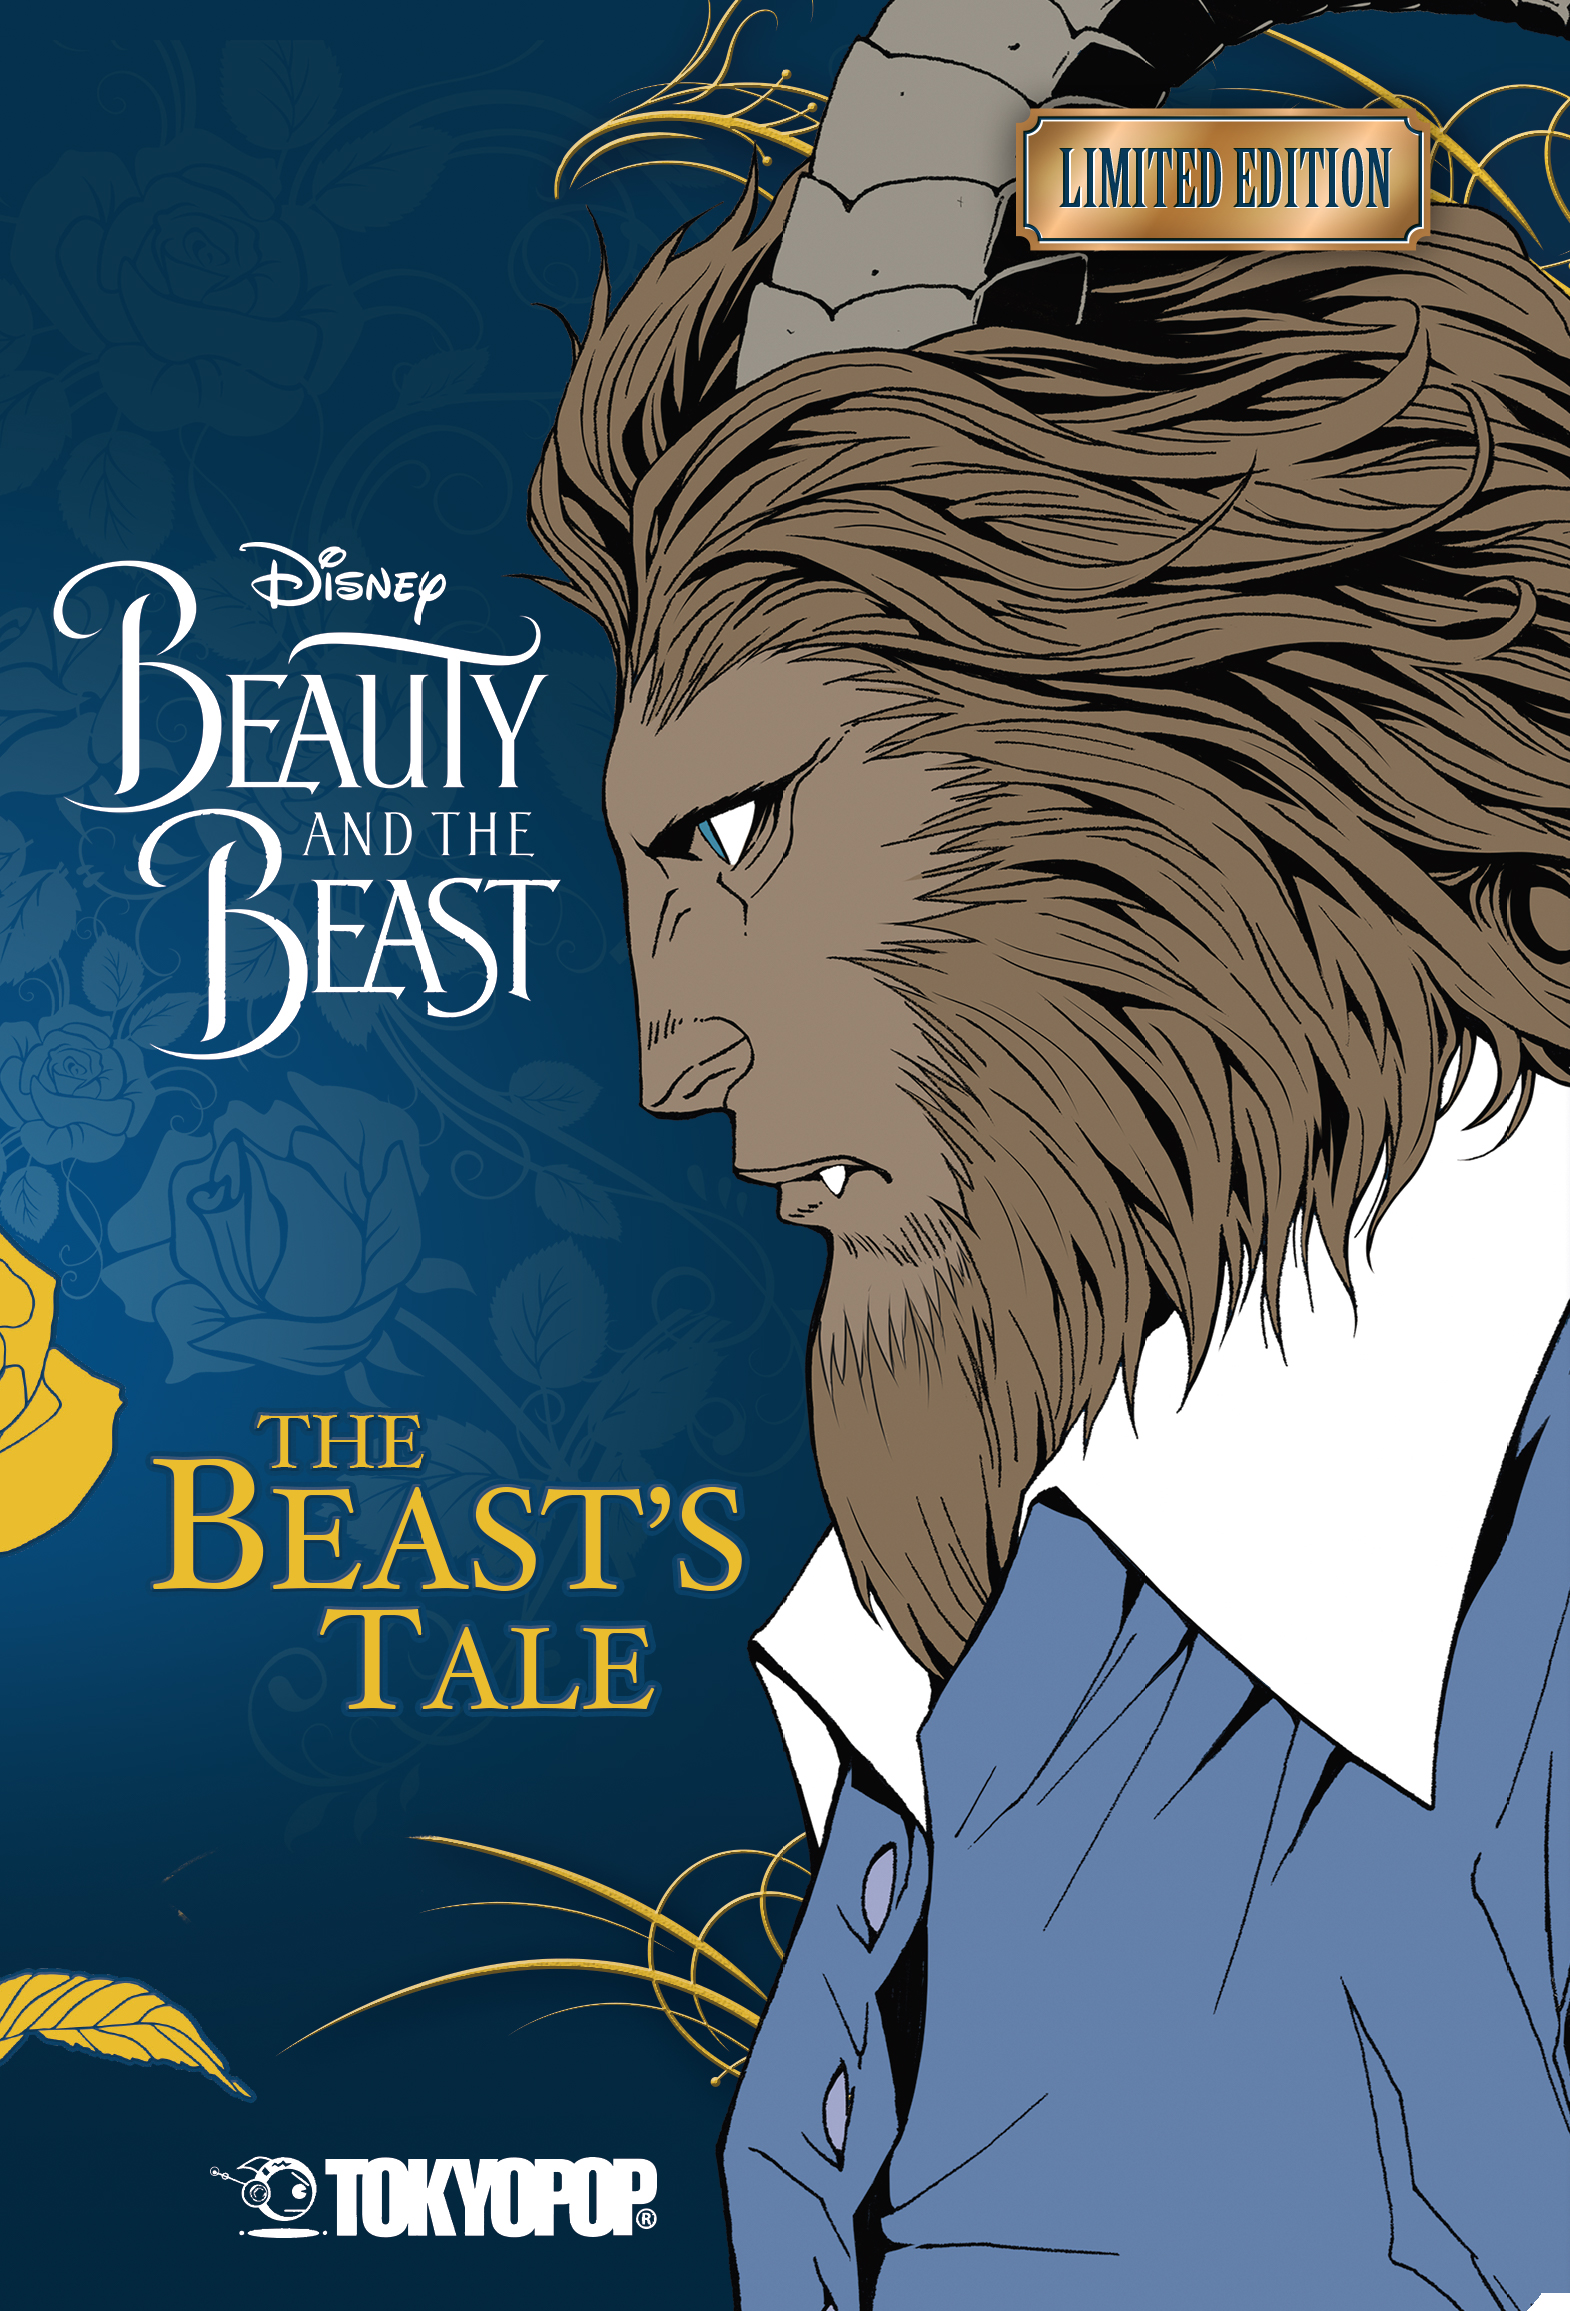 Disney Beauty and the Beast (special collector's box set)